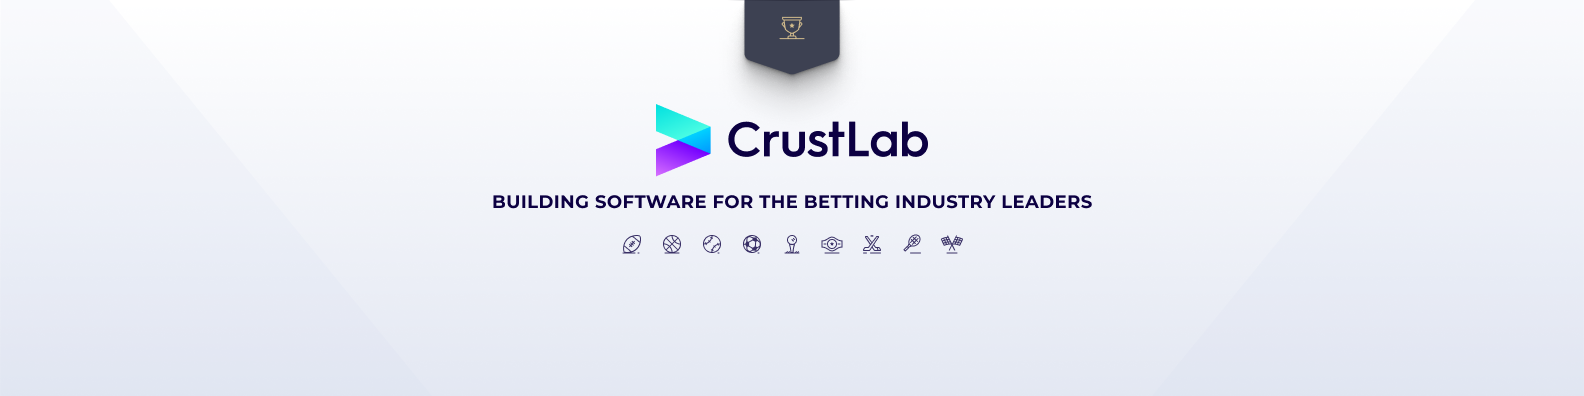 , CrustLab: software development services ranging from product design to delivery and launch